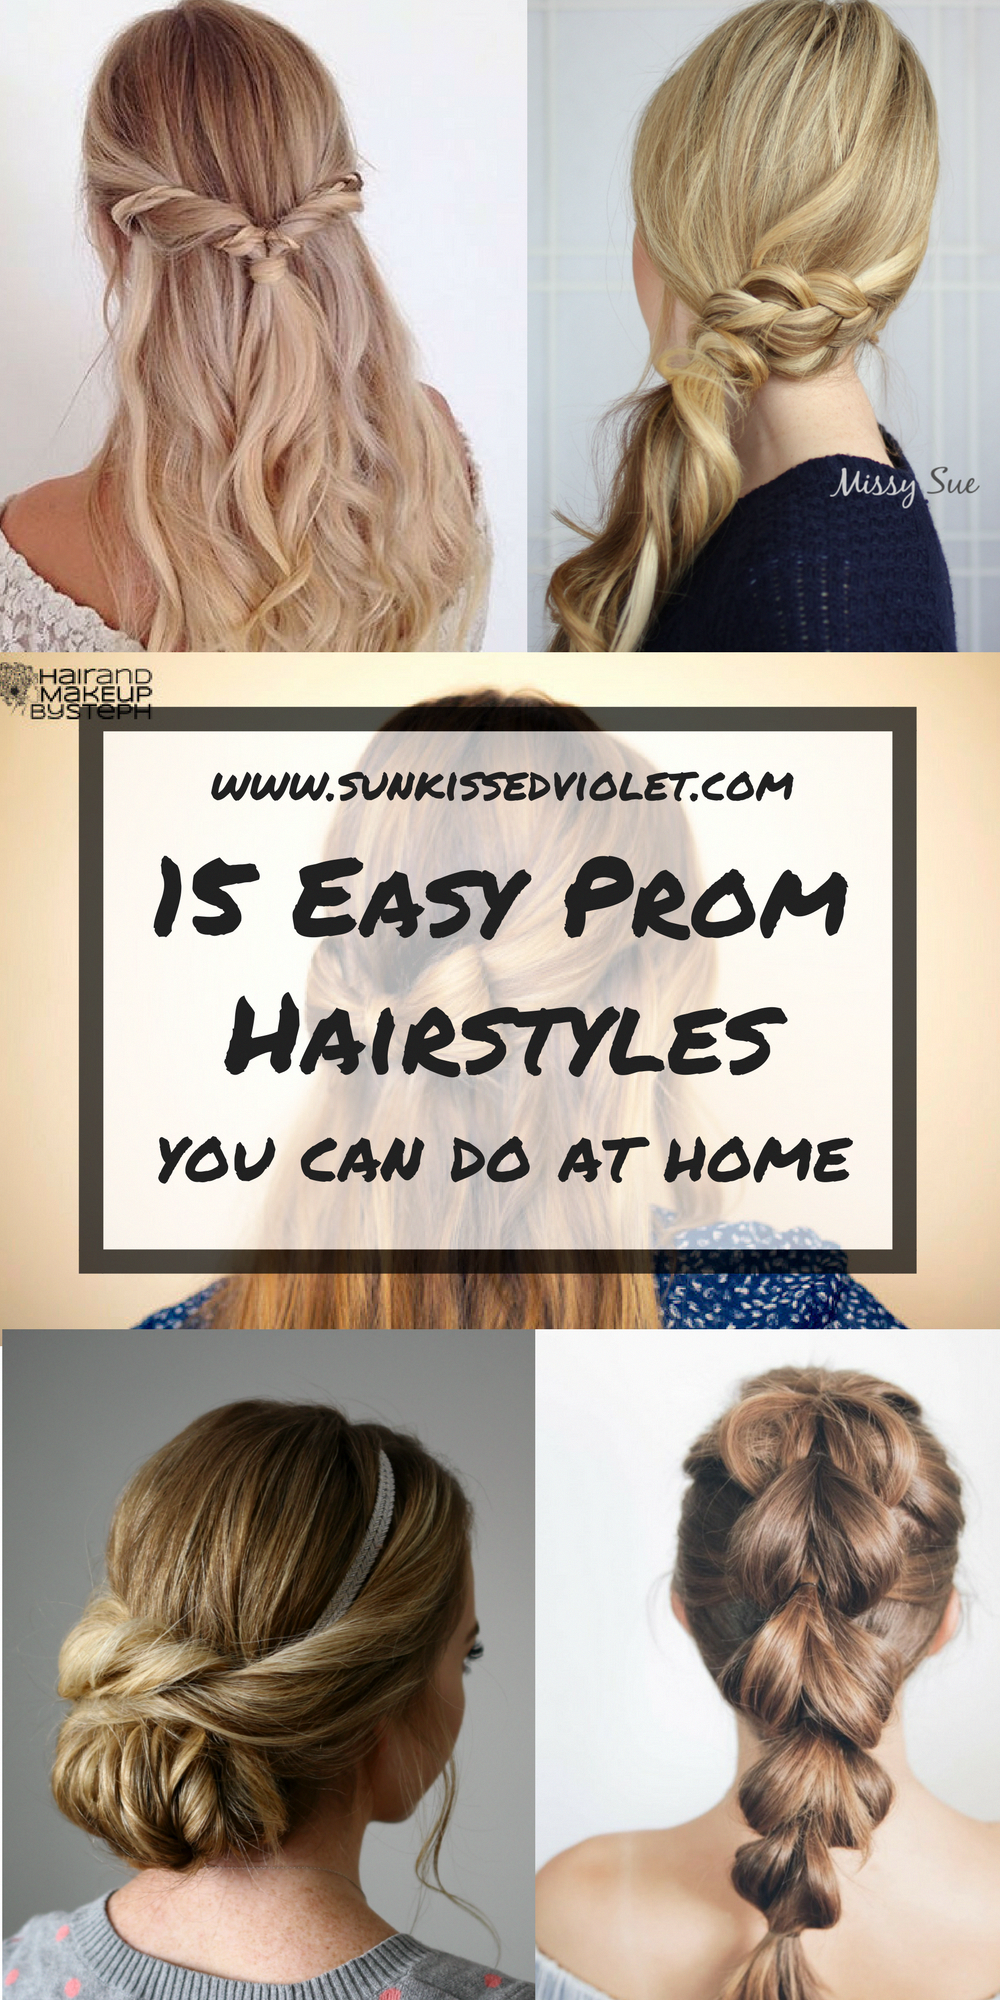 Tremendous 15 Easy Prom Hairstyles For Long Hair You Can Diy At Home Detailed Schematic Wiring Diagrams Phreekkolirunnerswayorg